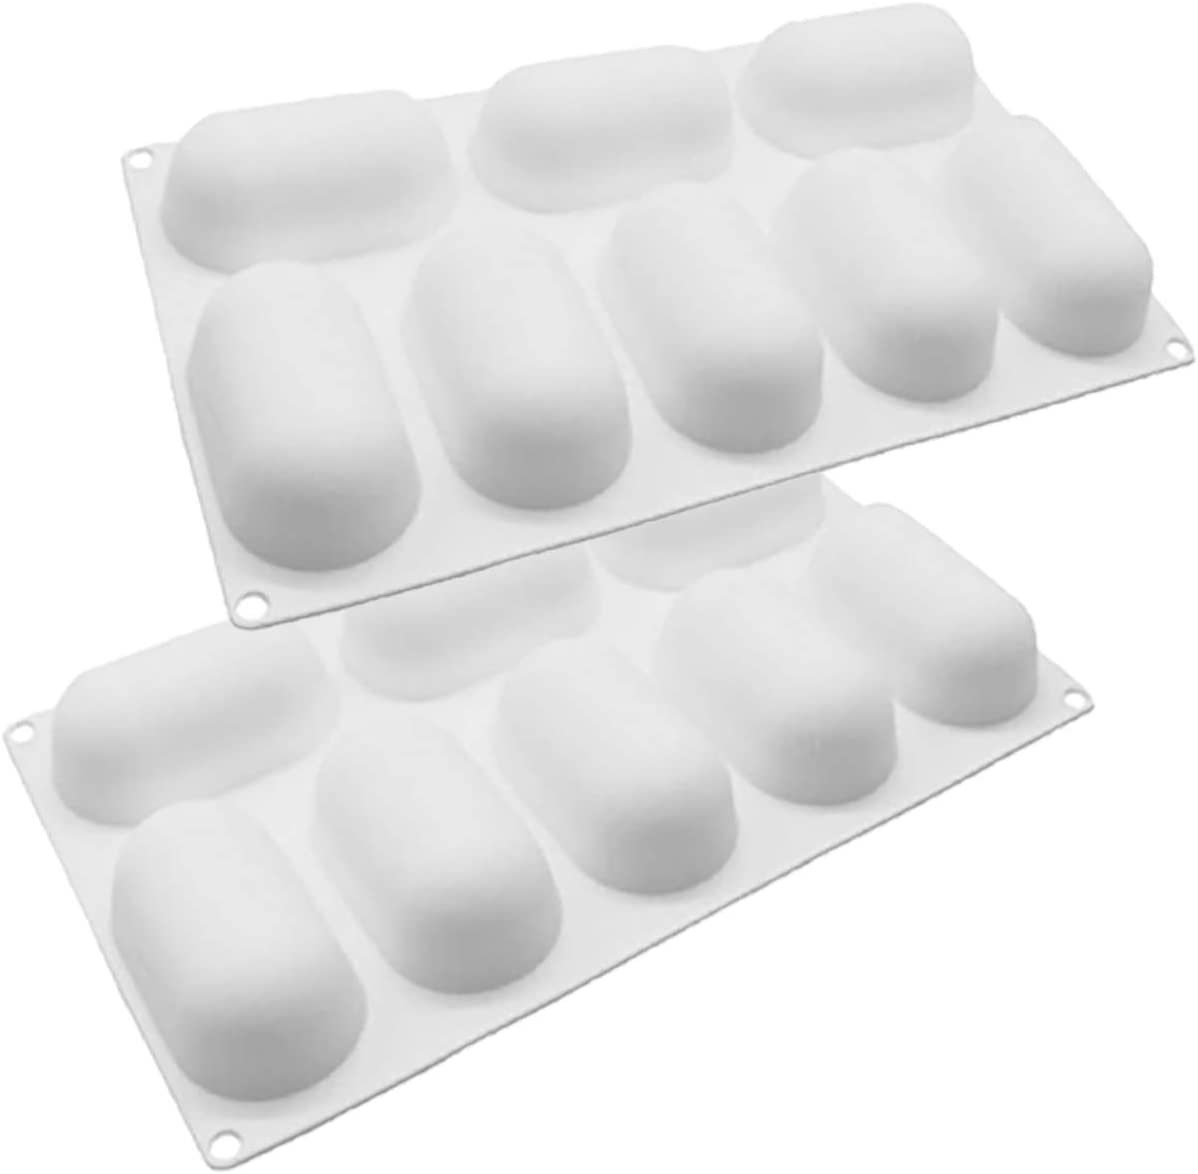 Mousse Cake Mold 8 Small Oval 3D Pillow Special price for a limited time Price reduction Silicone Capsule